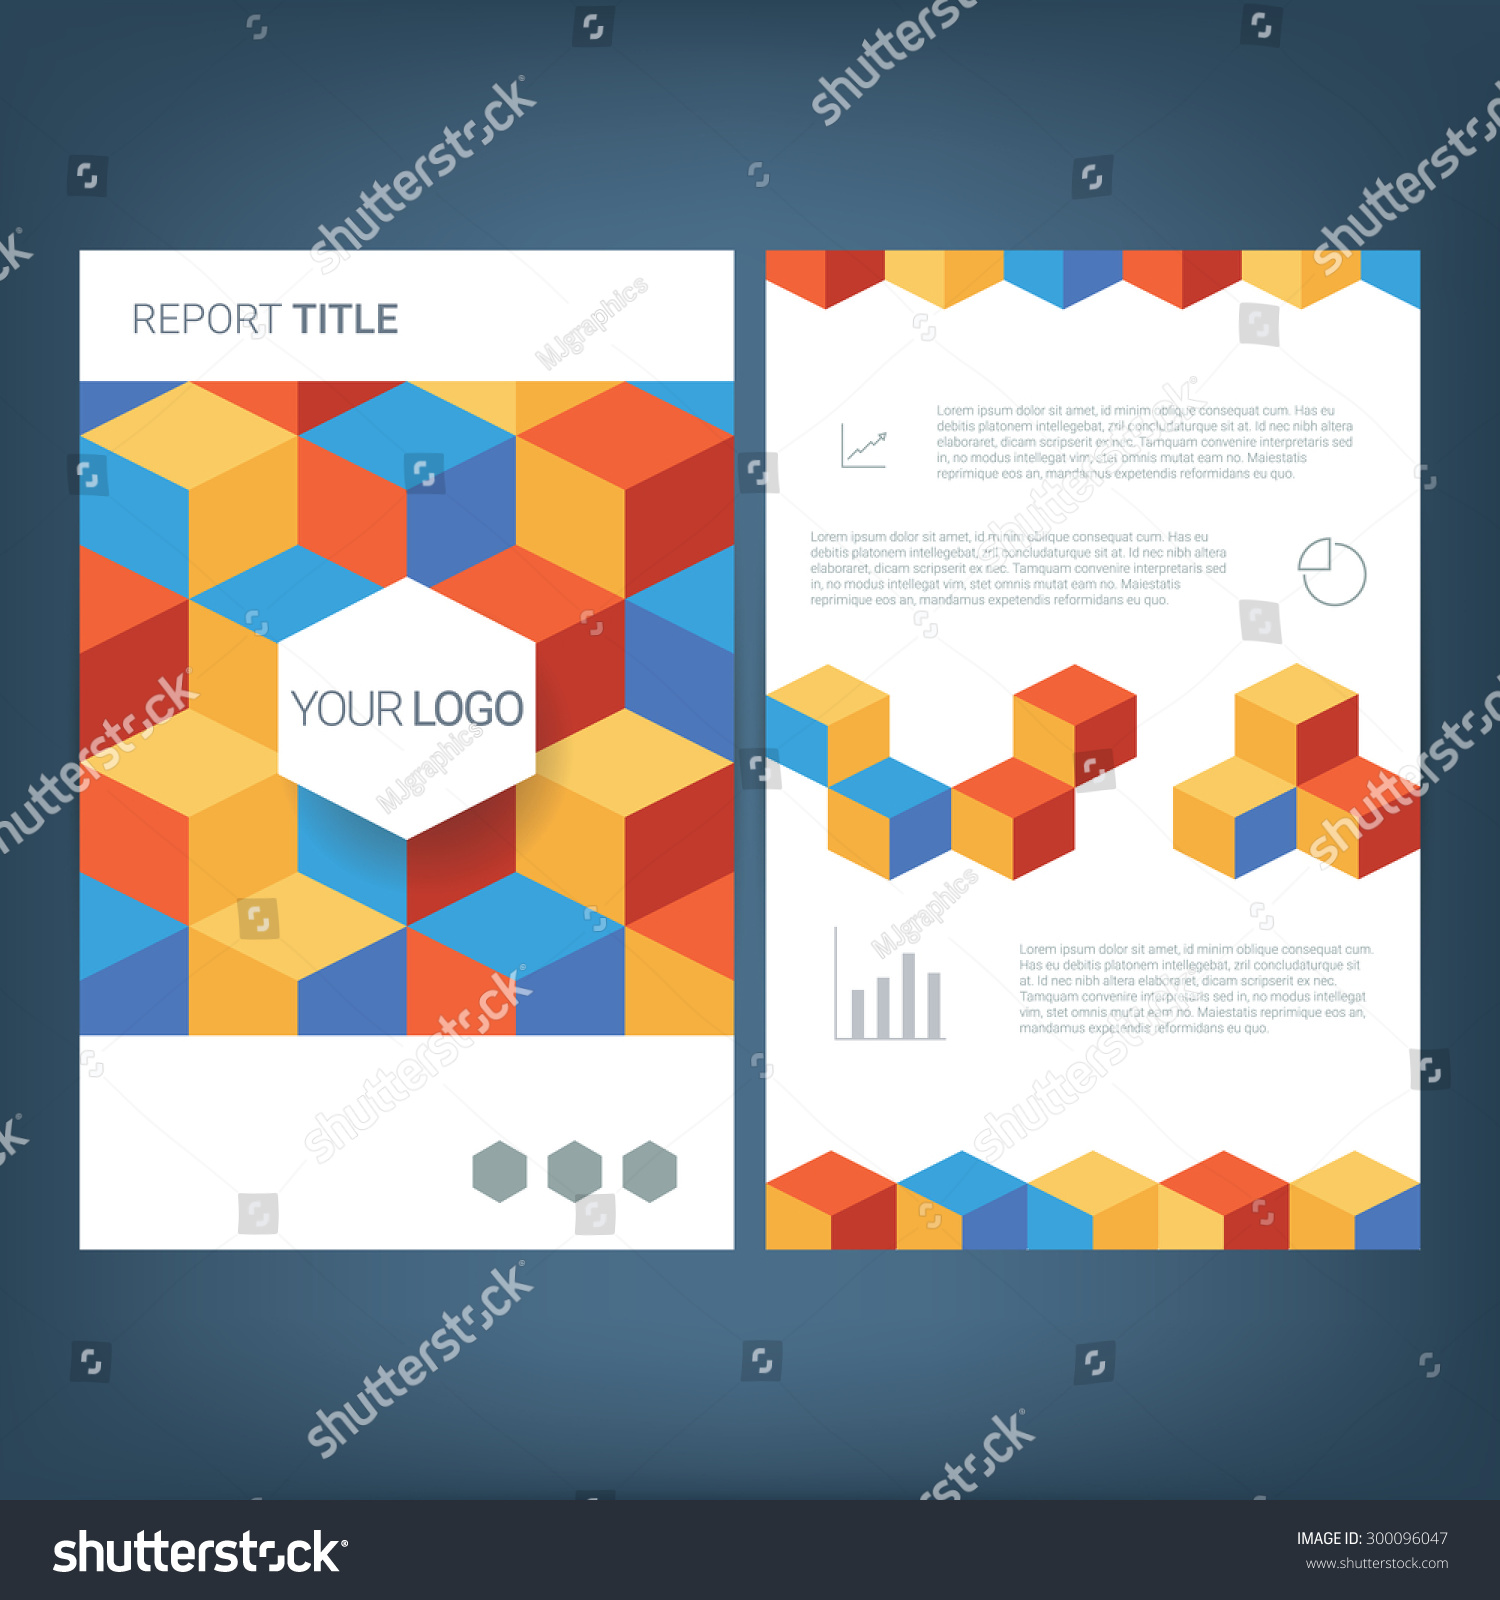 report cover template low polygonal cube patter geometric save to a lightbox